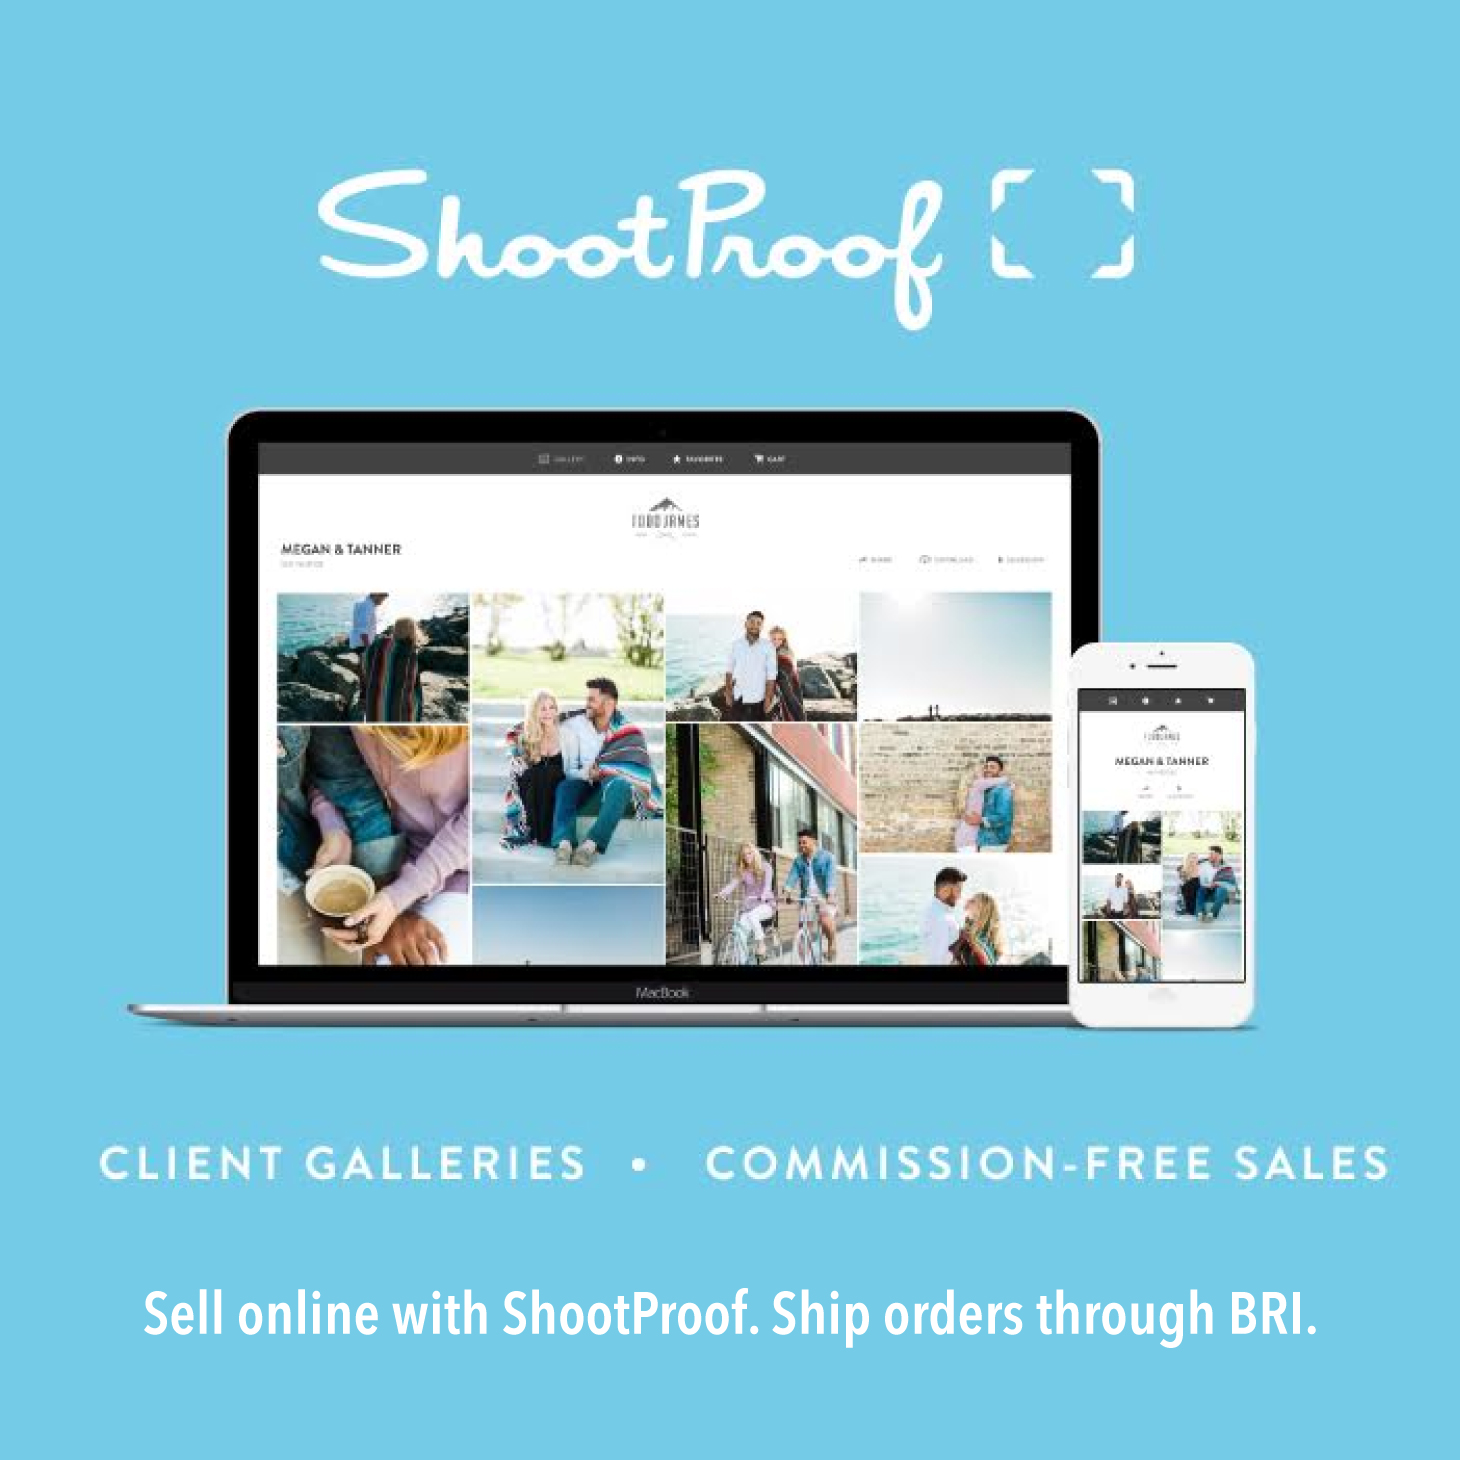 Sell Online with Shootproof